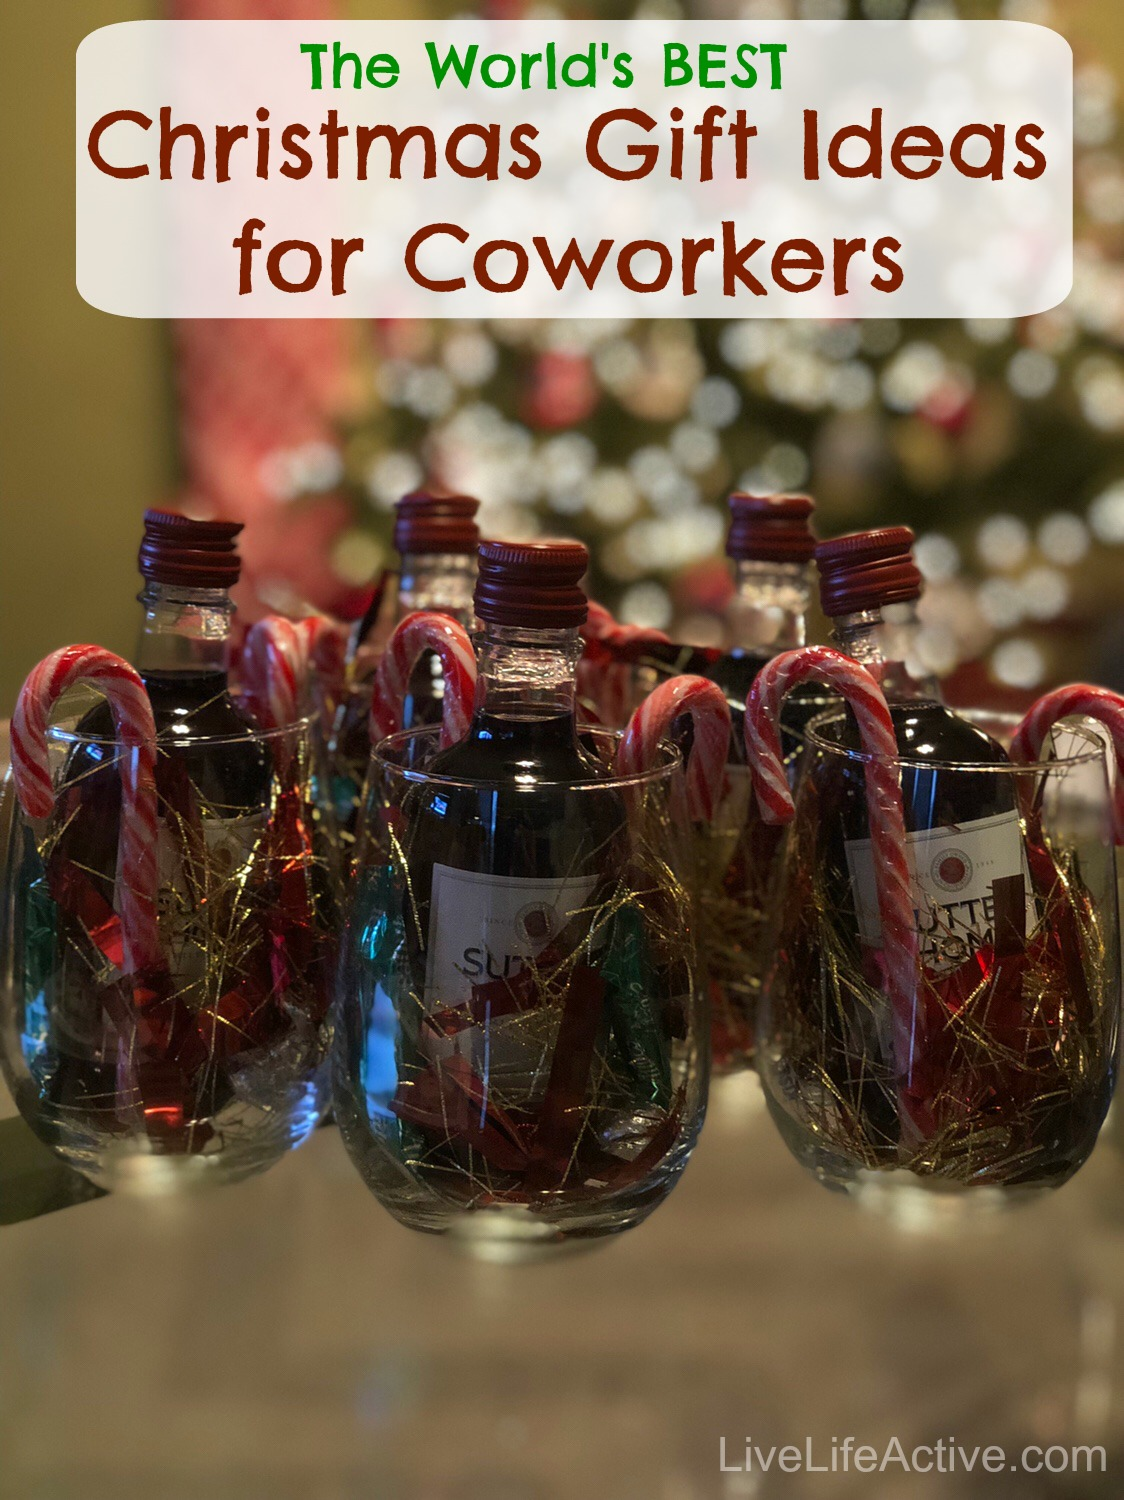 Christmas Gifts For Coworkers.Diy Christmas Gifts Cheap And Easy Gift Idea For Coworkers